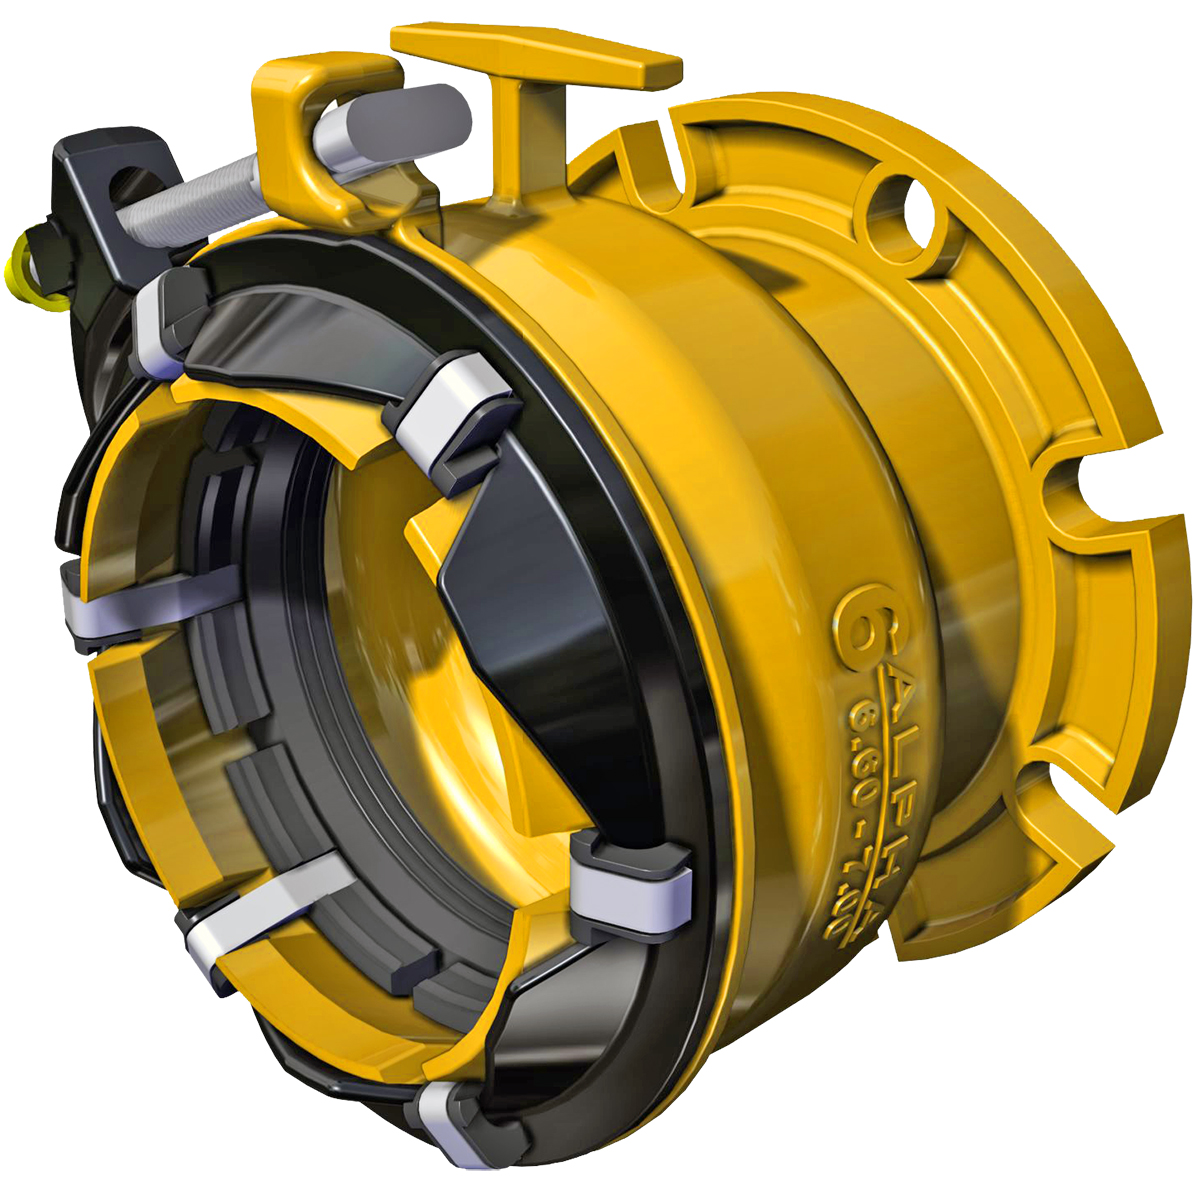 ALPHA FC - Restrained flanged coupling